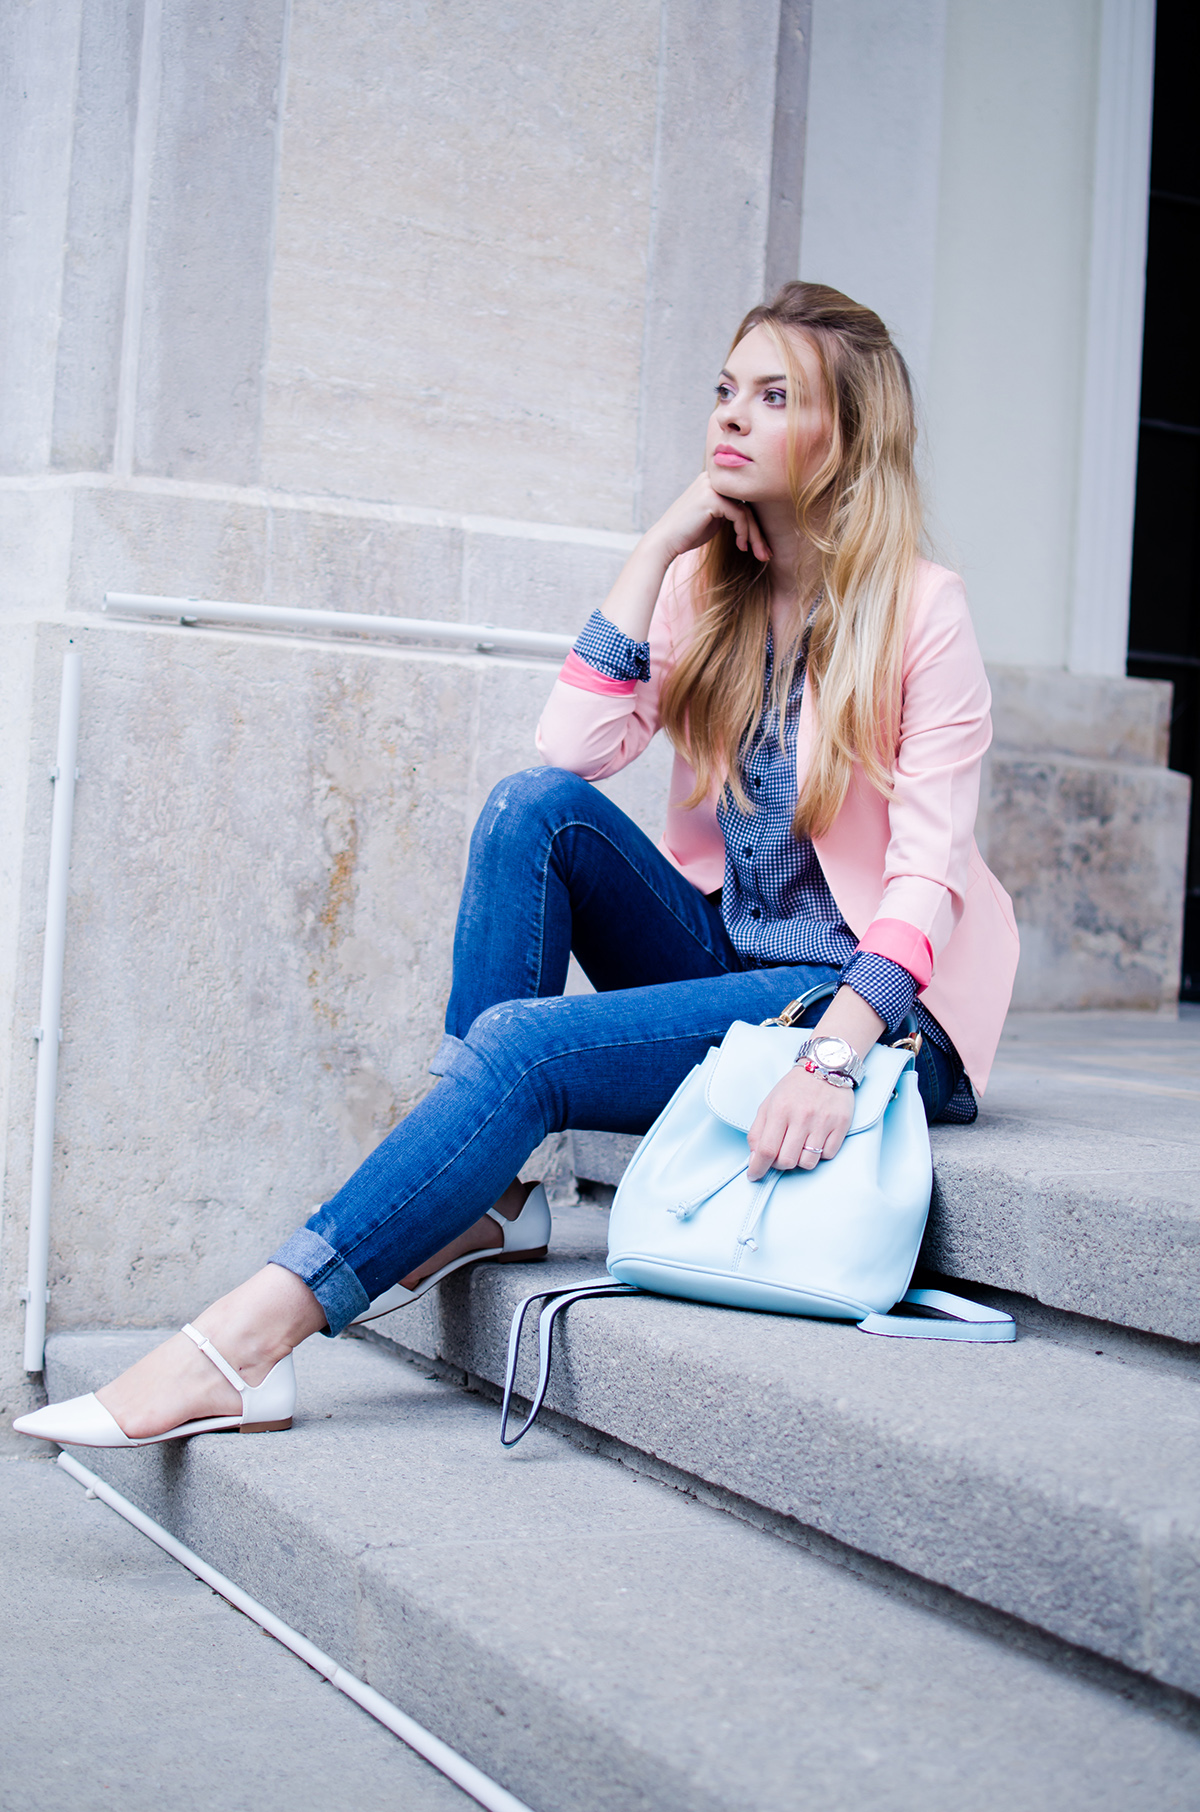 pink-blazer-skinny-jeans-white-pointed-flats-blue-backback-back-to-college (11)